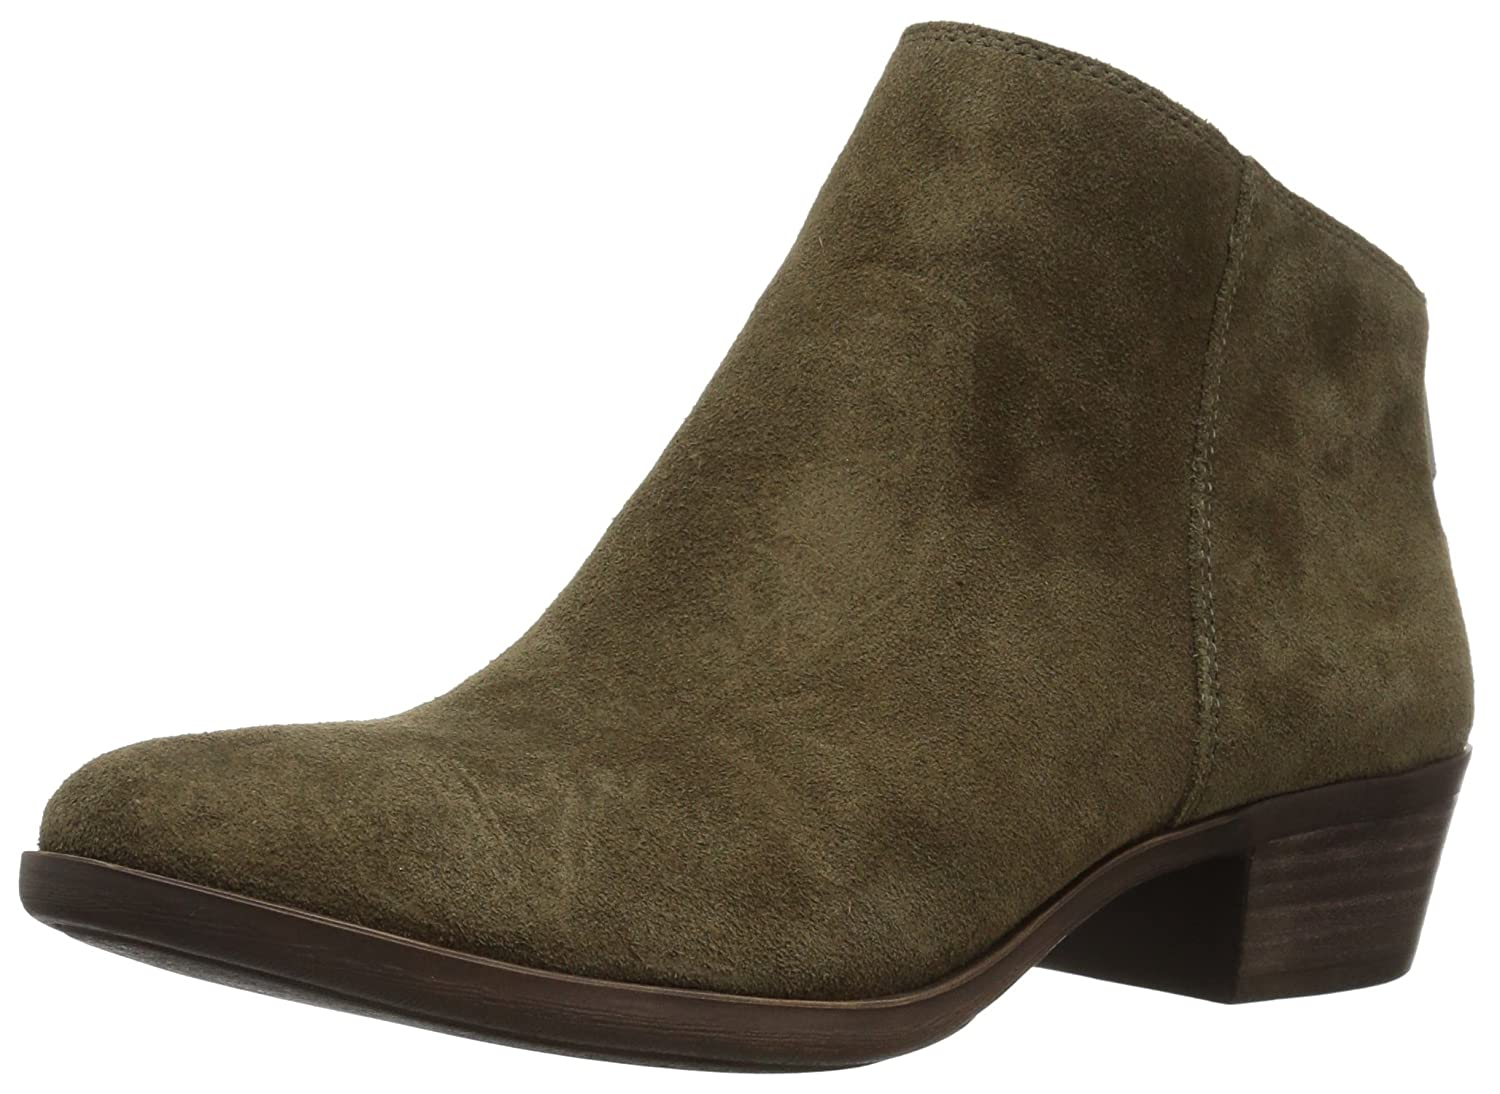 Lucky Brand Women's Bremma Ankle Boot B07CG6PYPD 11 B(M) US|Ivy Green